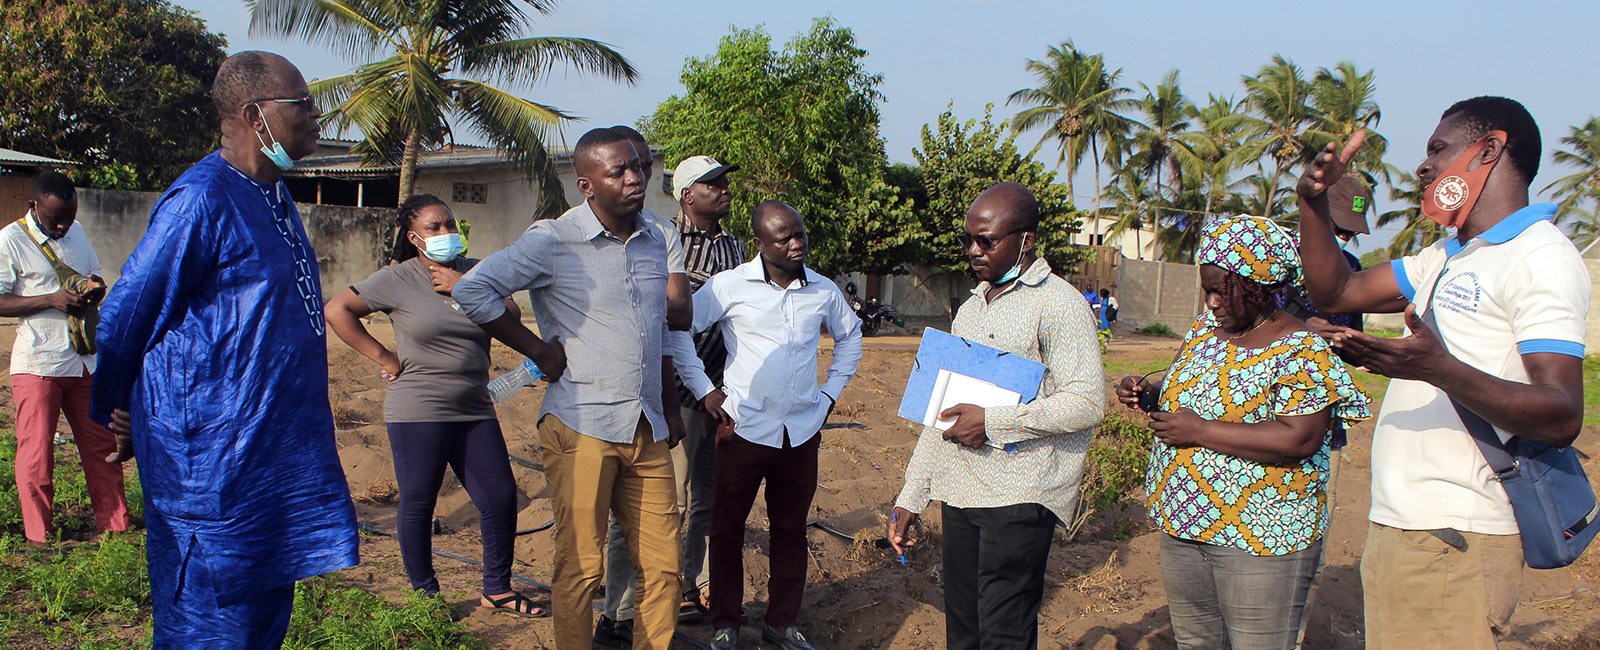 How Organic Trainings Give a New Perspective to Farmers in Benin